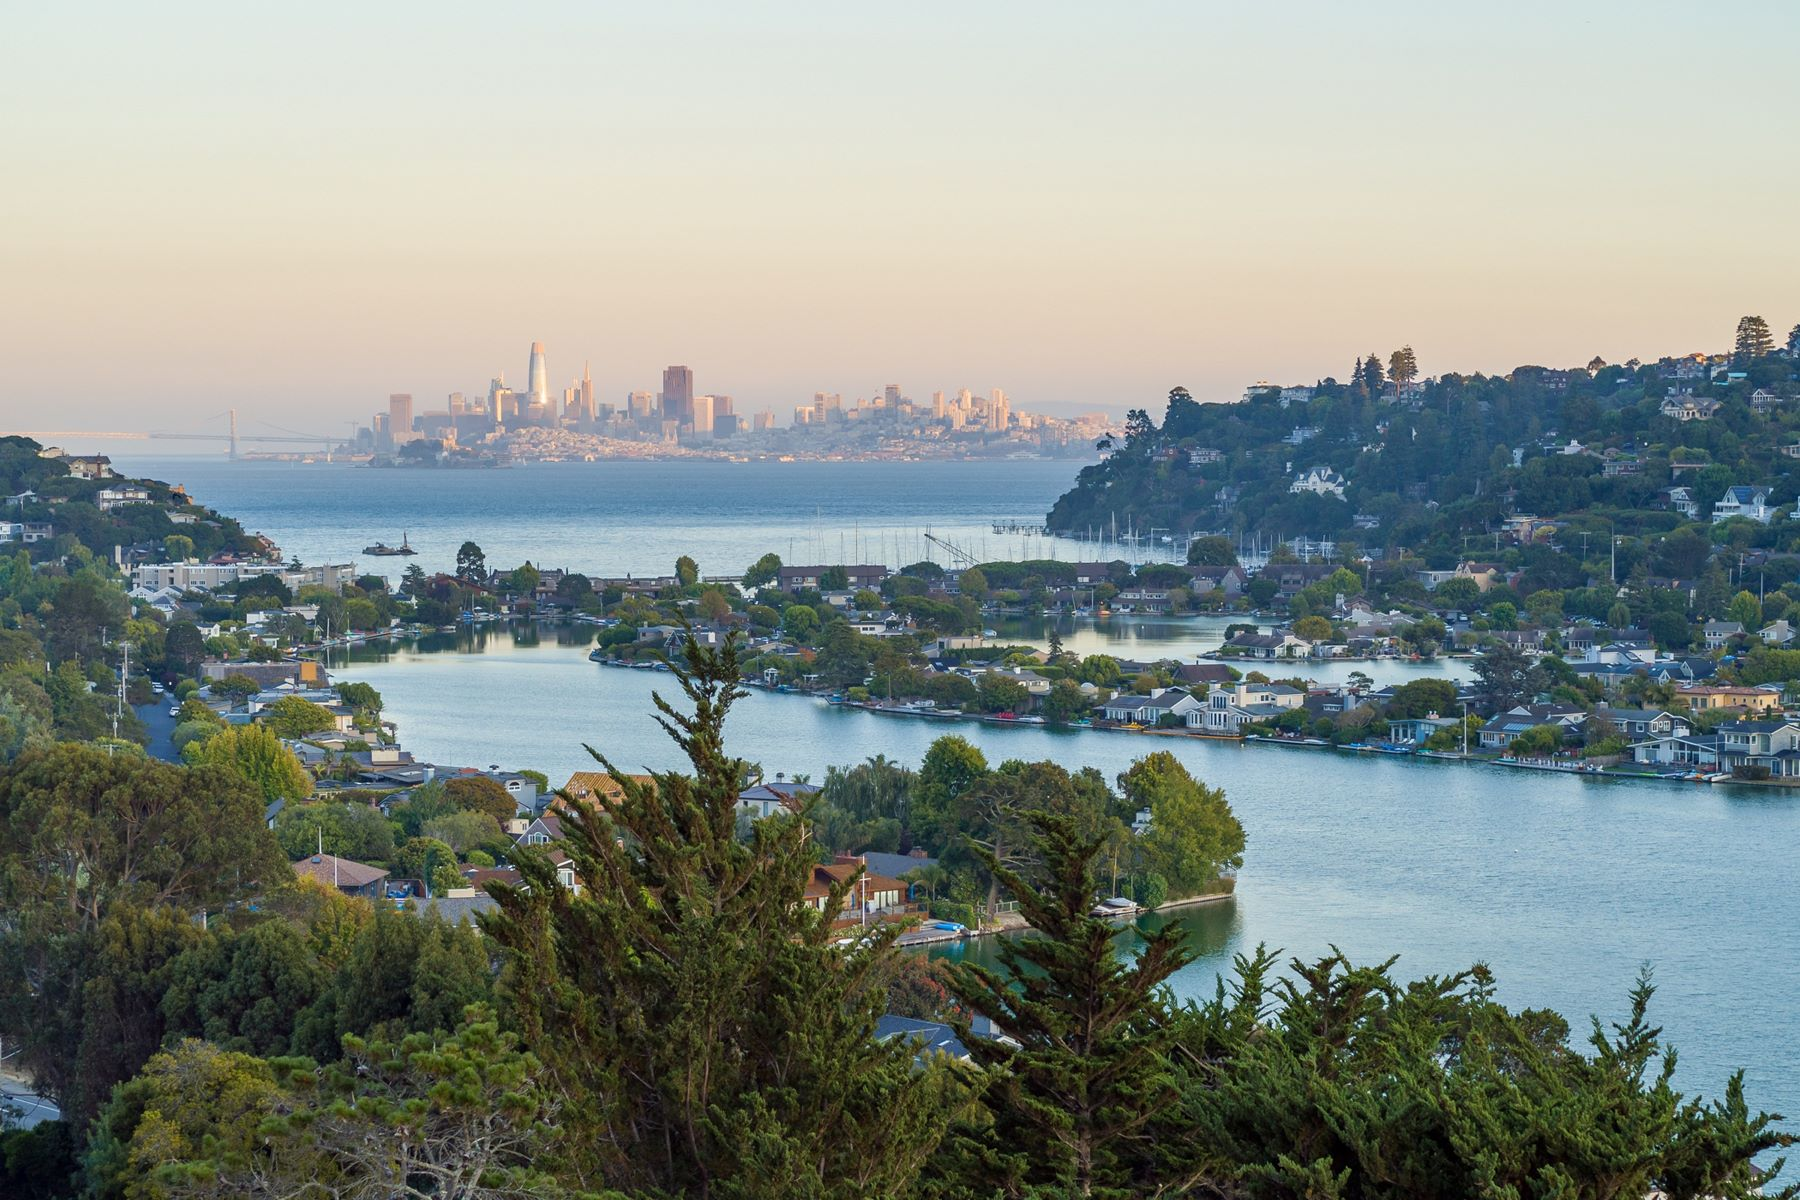 Property for Sale at Modern Eco-Friendly Home with Panoramic Views of SF Skyline, SF Bay and More 4 Owlswood Rd. Tiburon, California 94920 United States